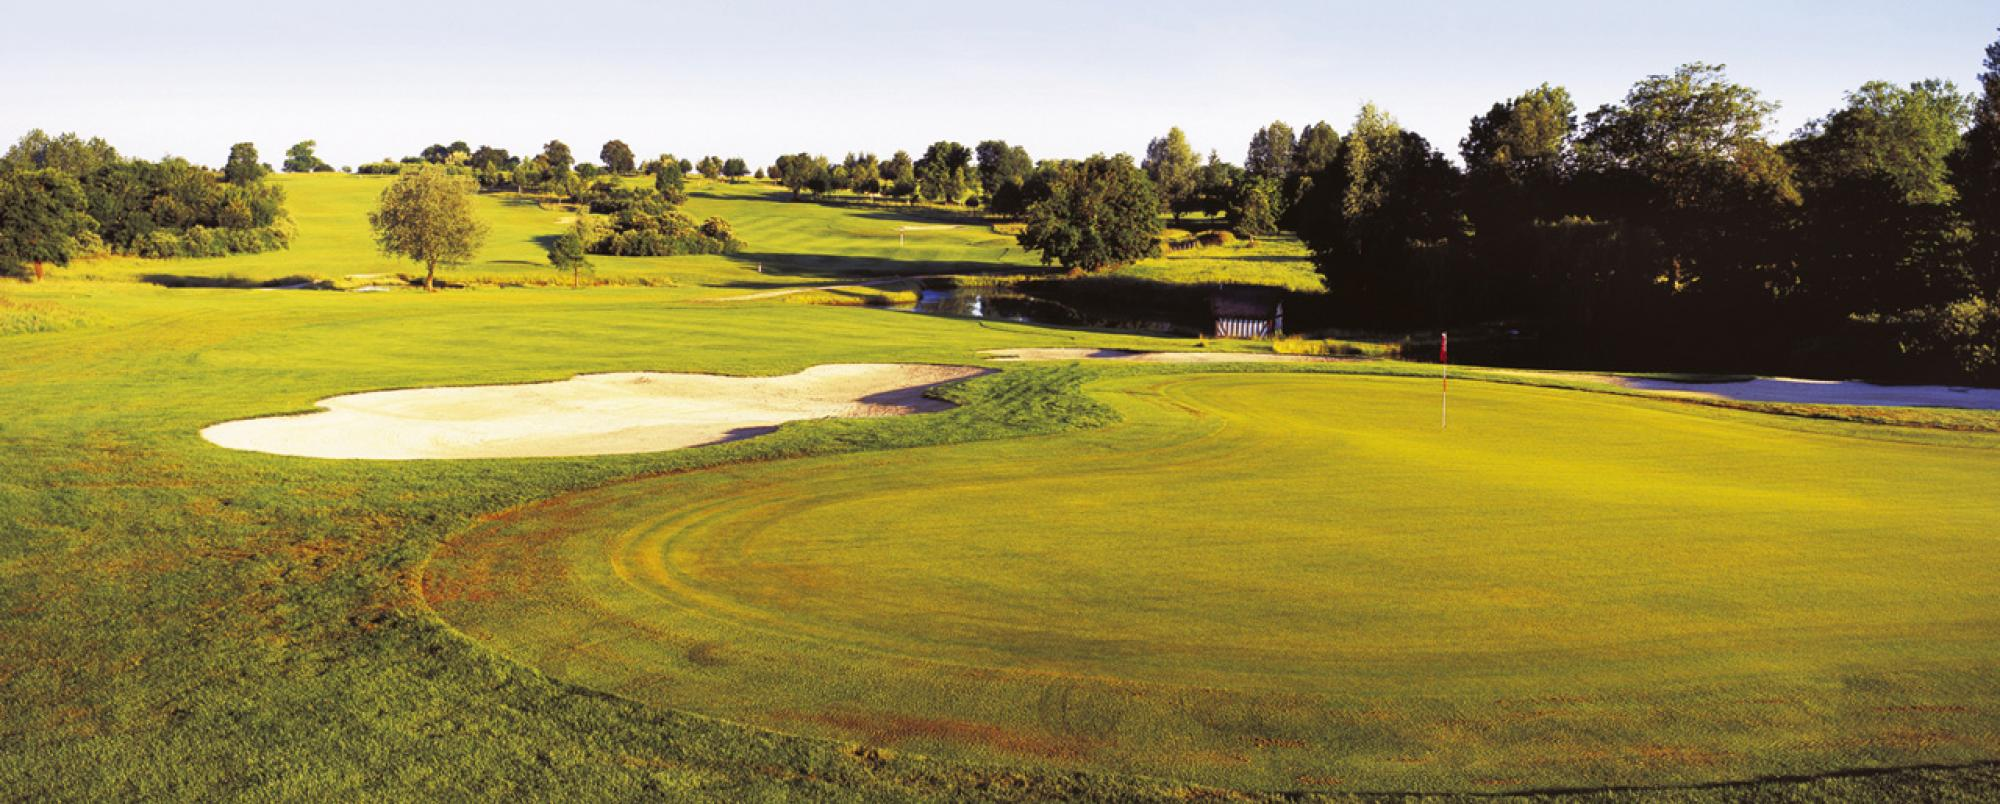 The Golf Barriere de Saint-Julien's impressive golf course situated in sensational Normandy.